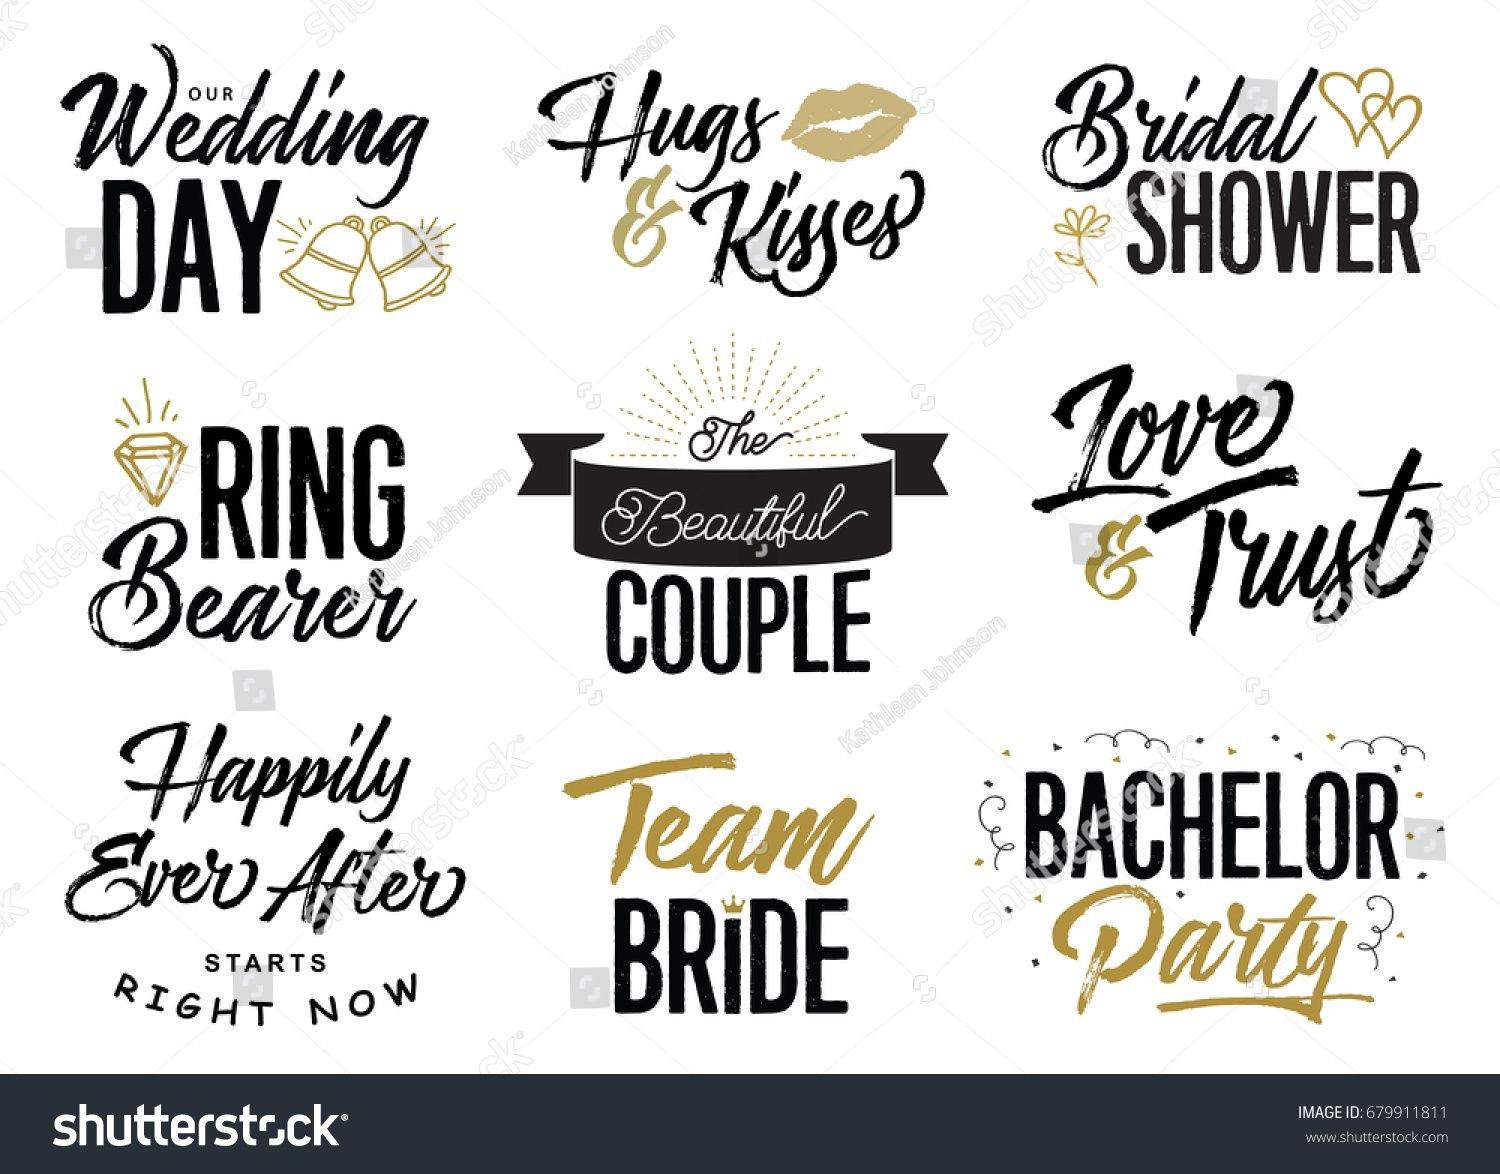 wedding lettering phrases vector set our wedding day hugs kisses bridal shower ring bearer love trust the beautiful couple team bride